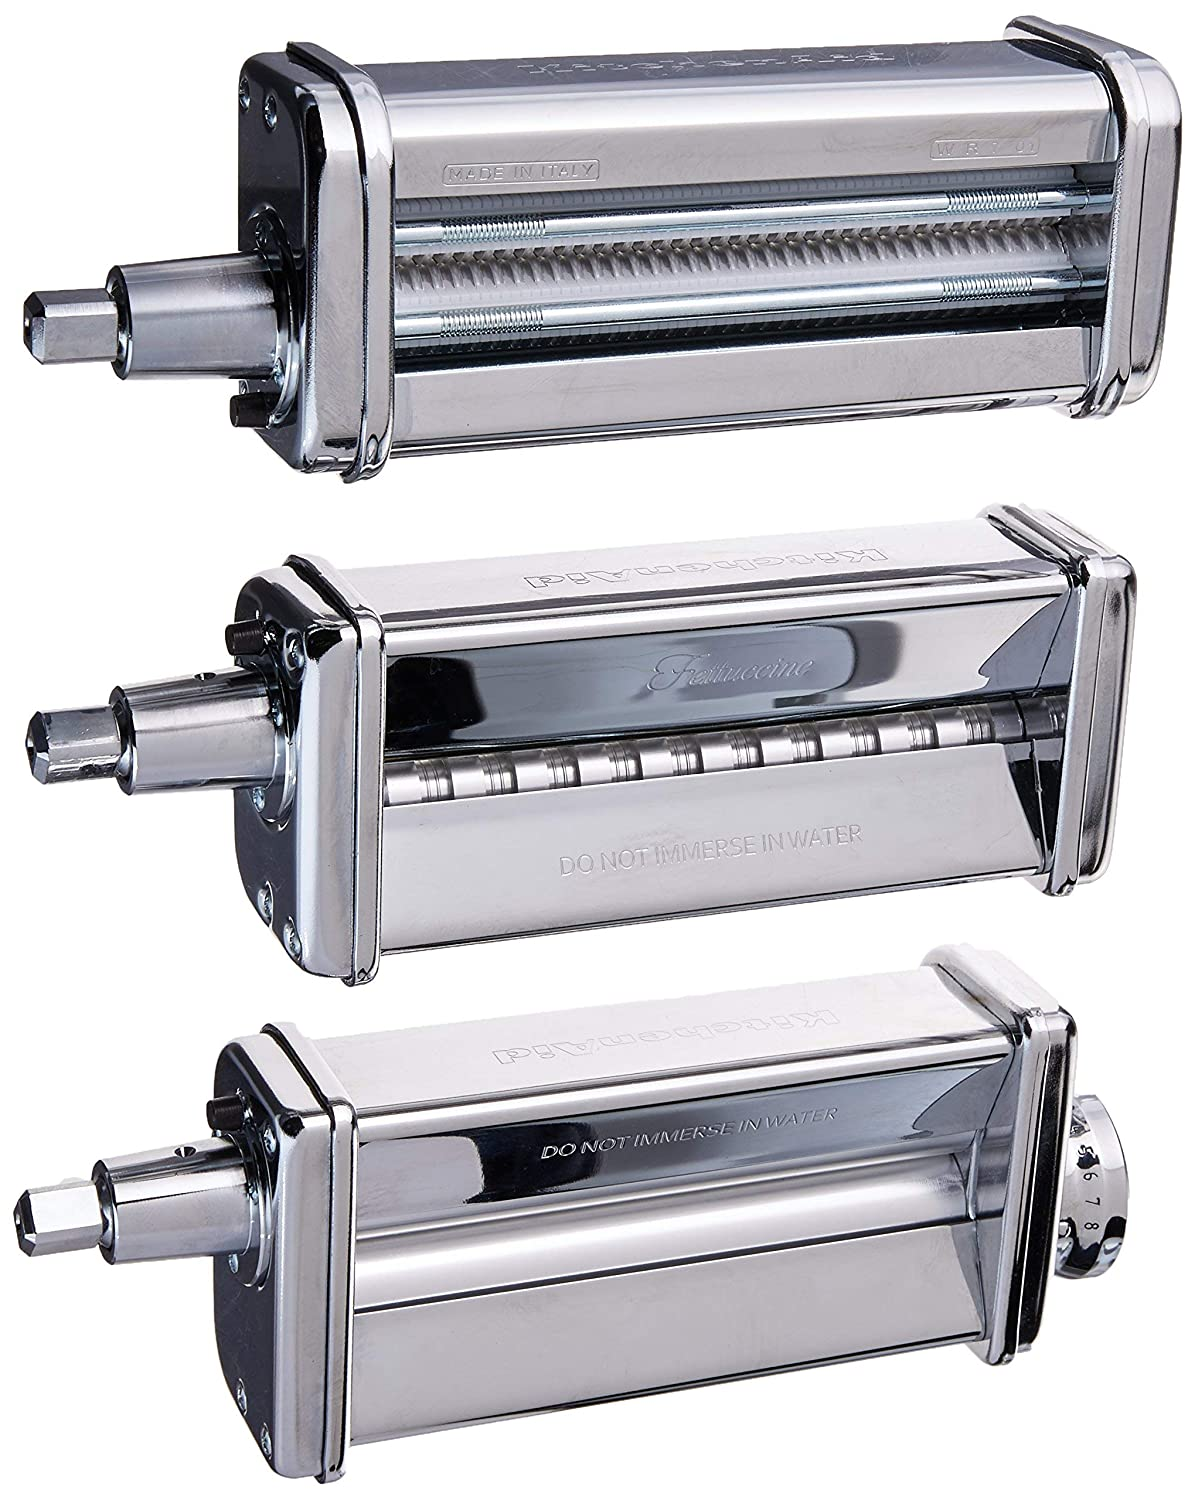 Kitchenaid KPRA Pasta Roller and cutter for Spaghetti and Fettuccine (Certified Refurbished)